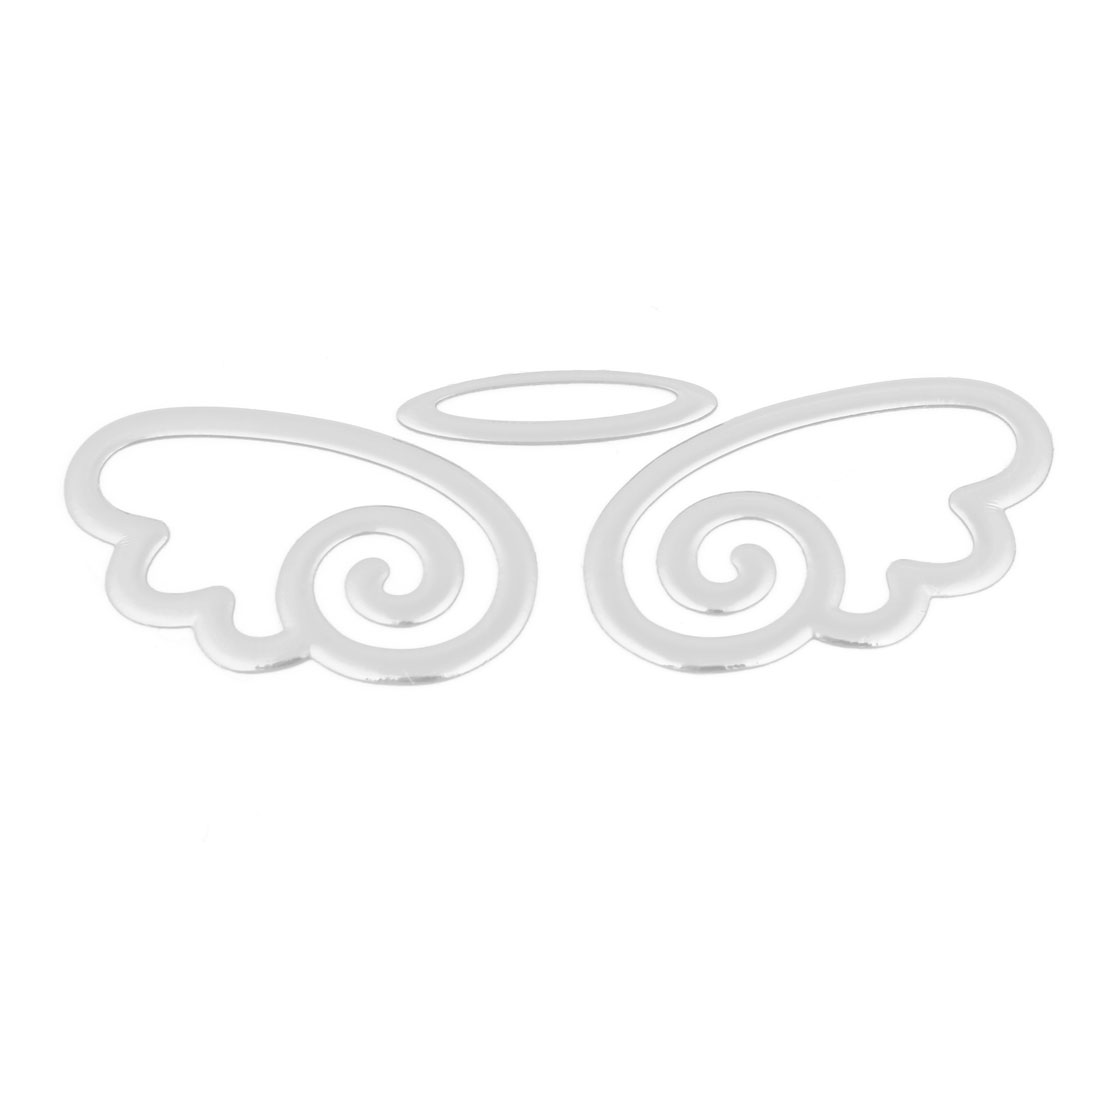 Auto Car 3D Angel Designed Self Adhesive Sticker Silver Tone